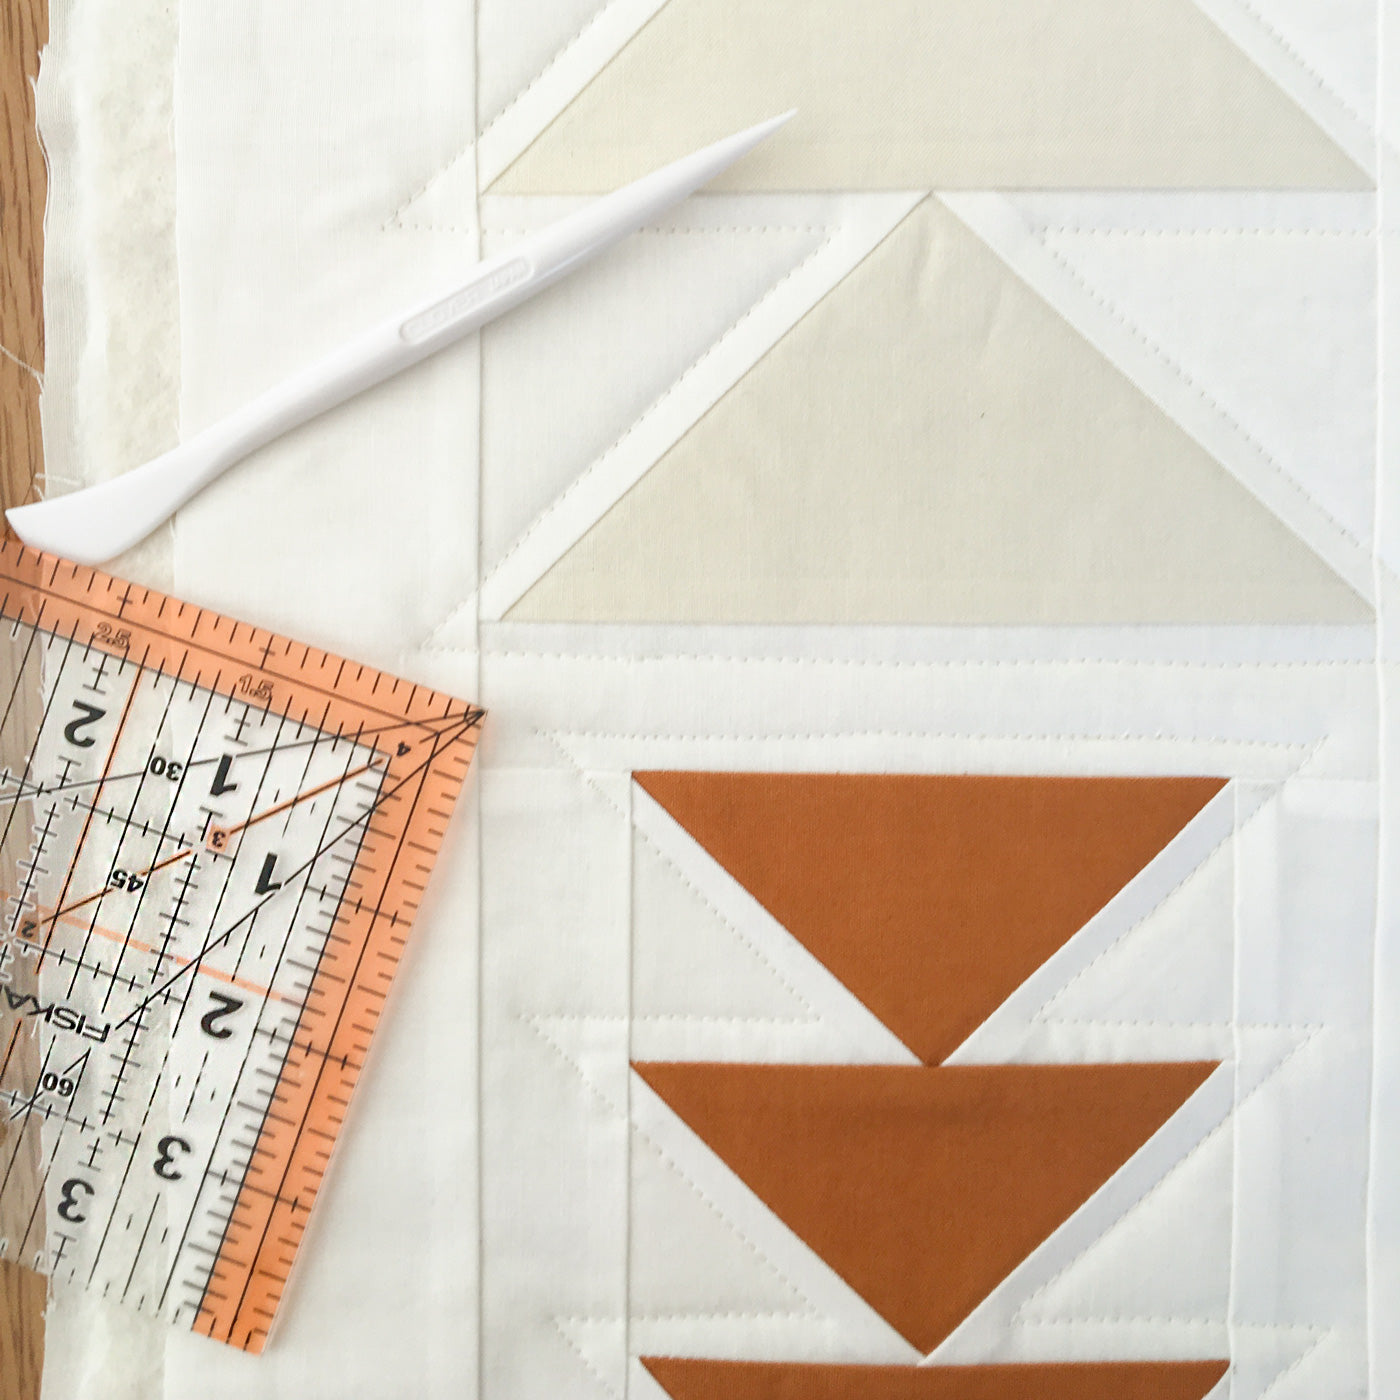 Using the hera marker by clover and ruler to mark quilting lines for straight line quilting